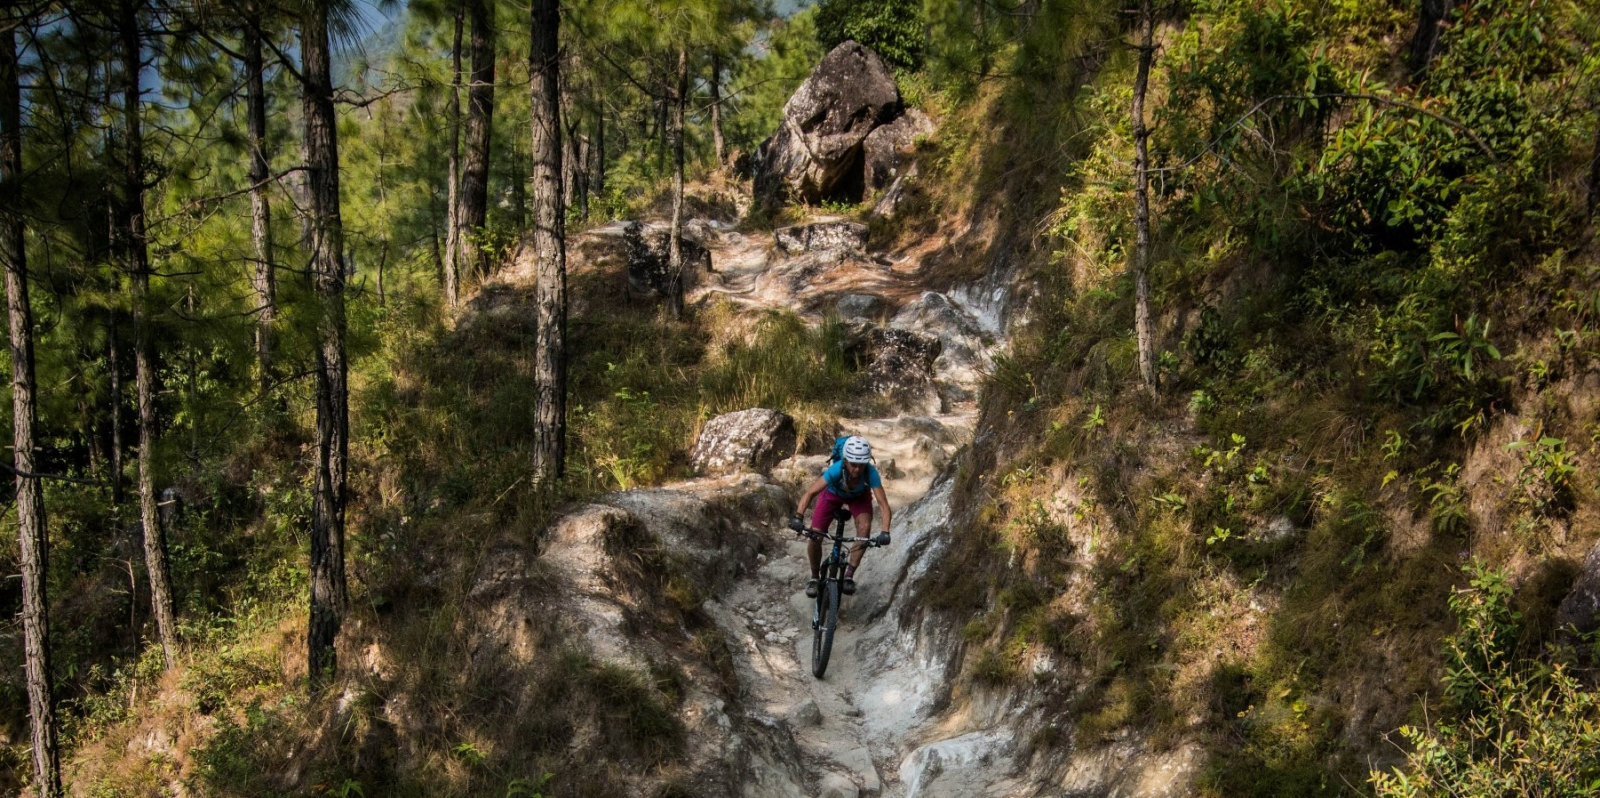 Boy Mountain Biking - things to do in Nepal